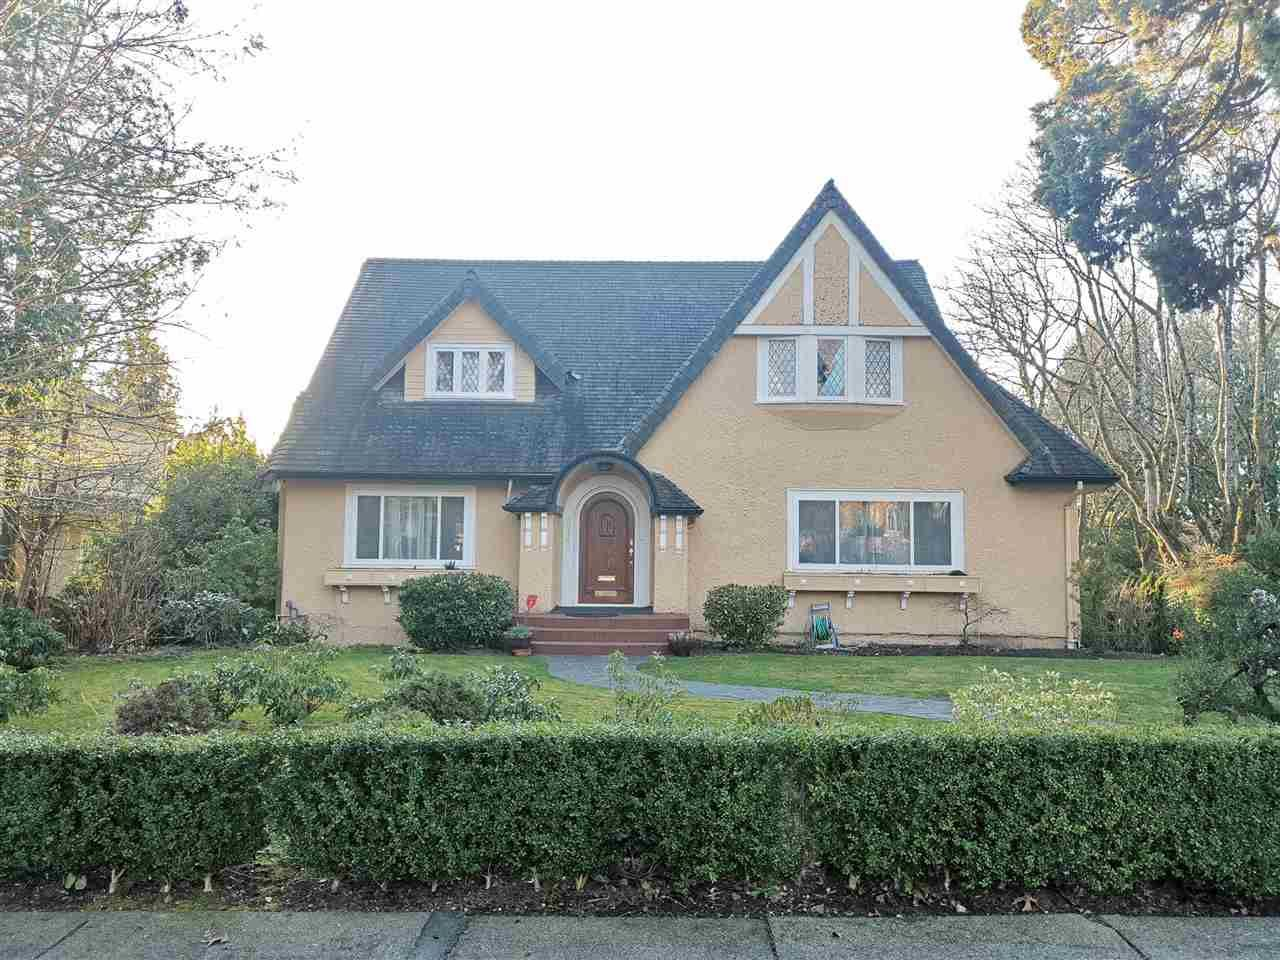 Main Photo: 5915 ANGUS Drive in Vancouver: South Granville House for sale (Vancouver West)  : MLS®# R2548300